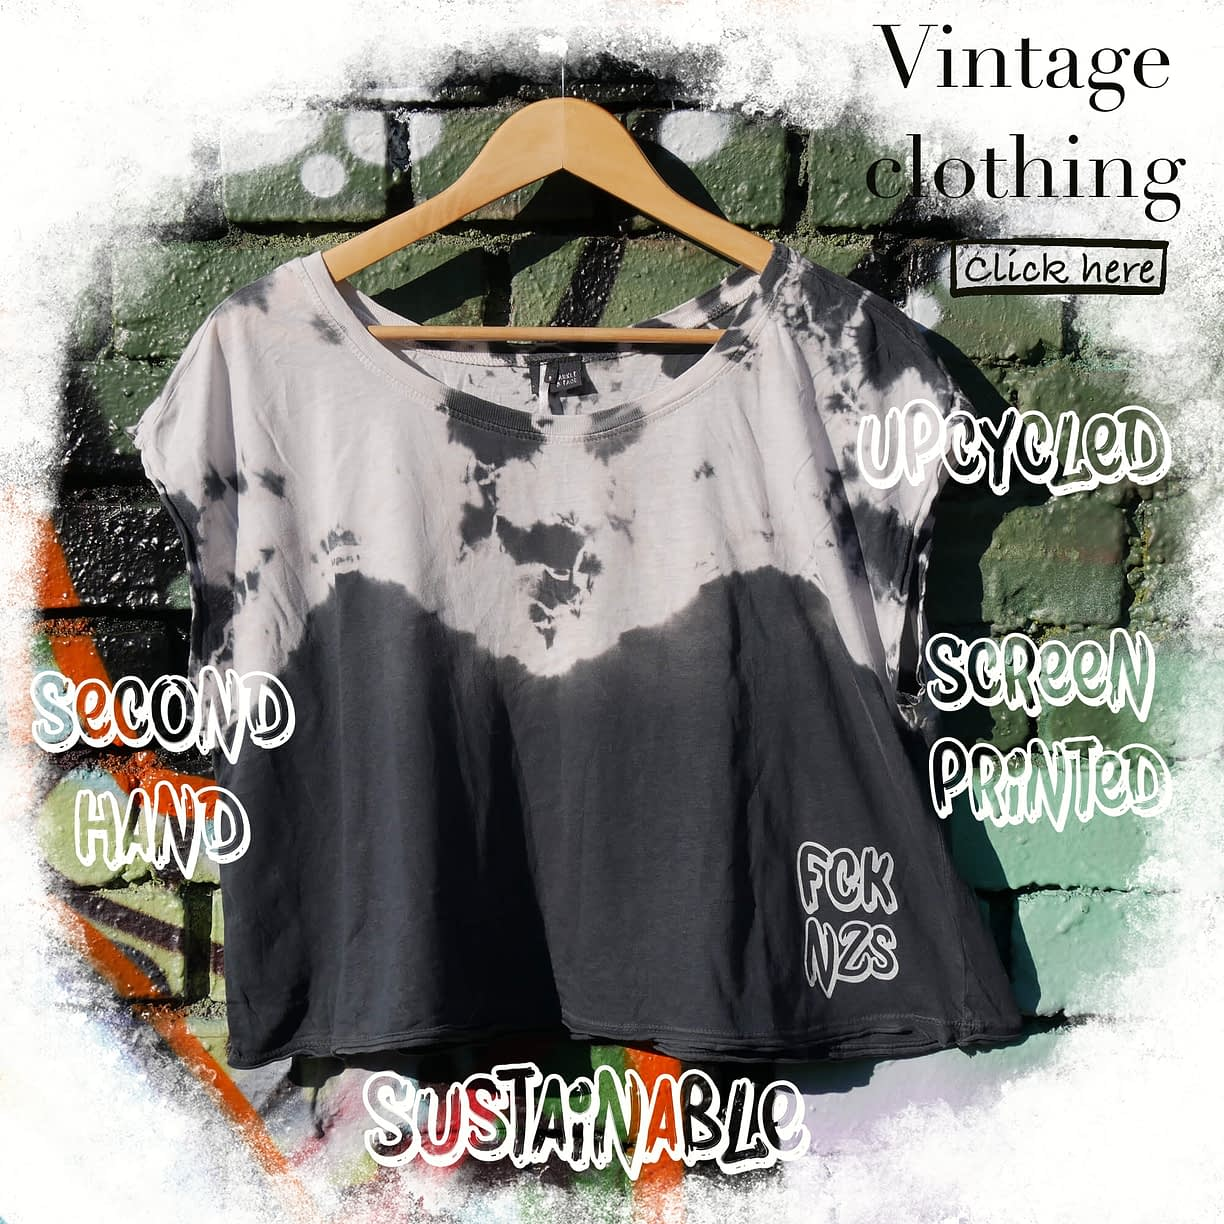 vintage upcycled clothes